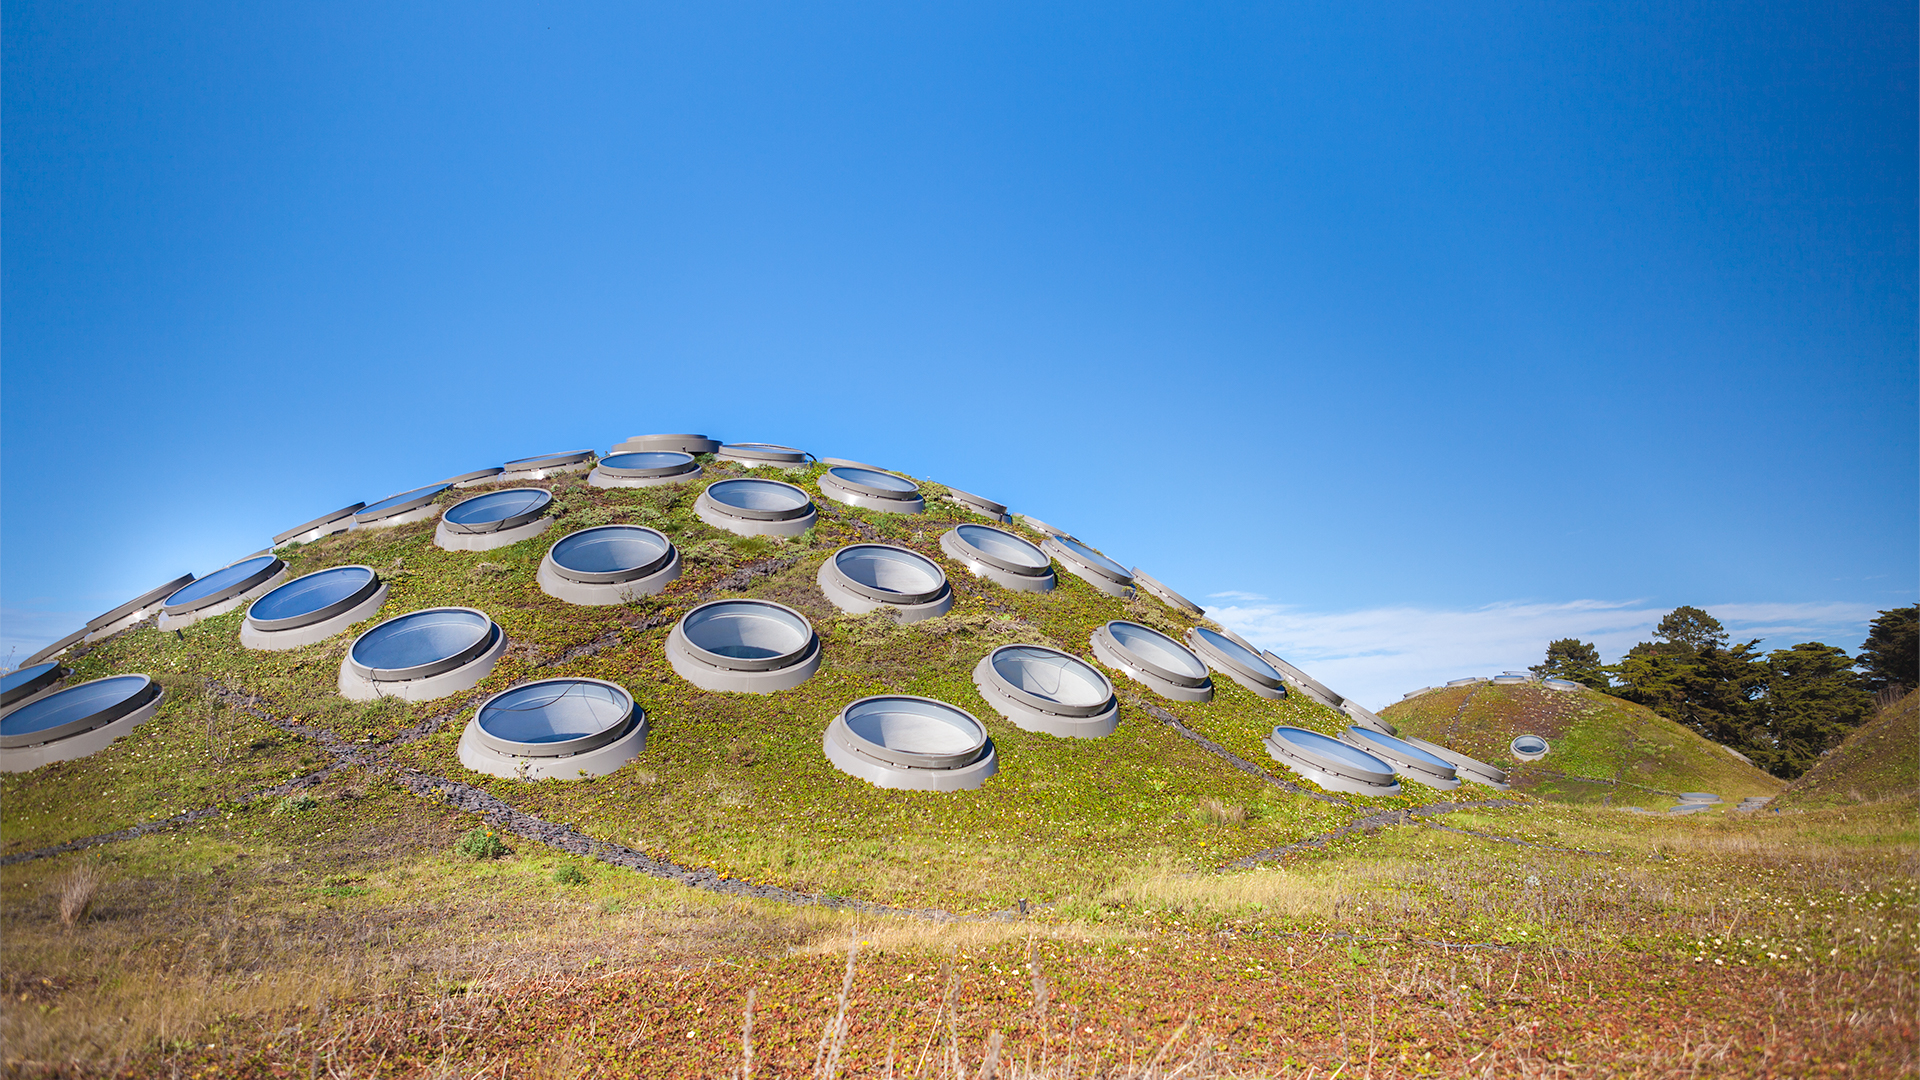 Living Roof | California Academy of Sciences